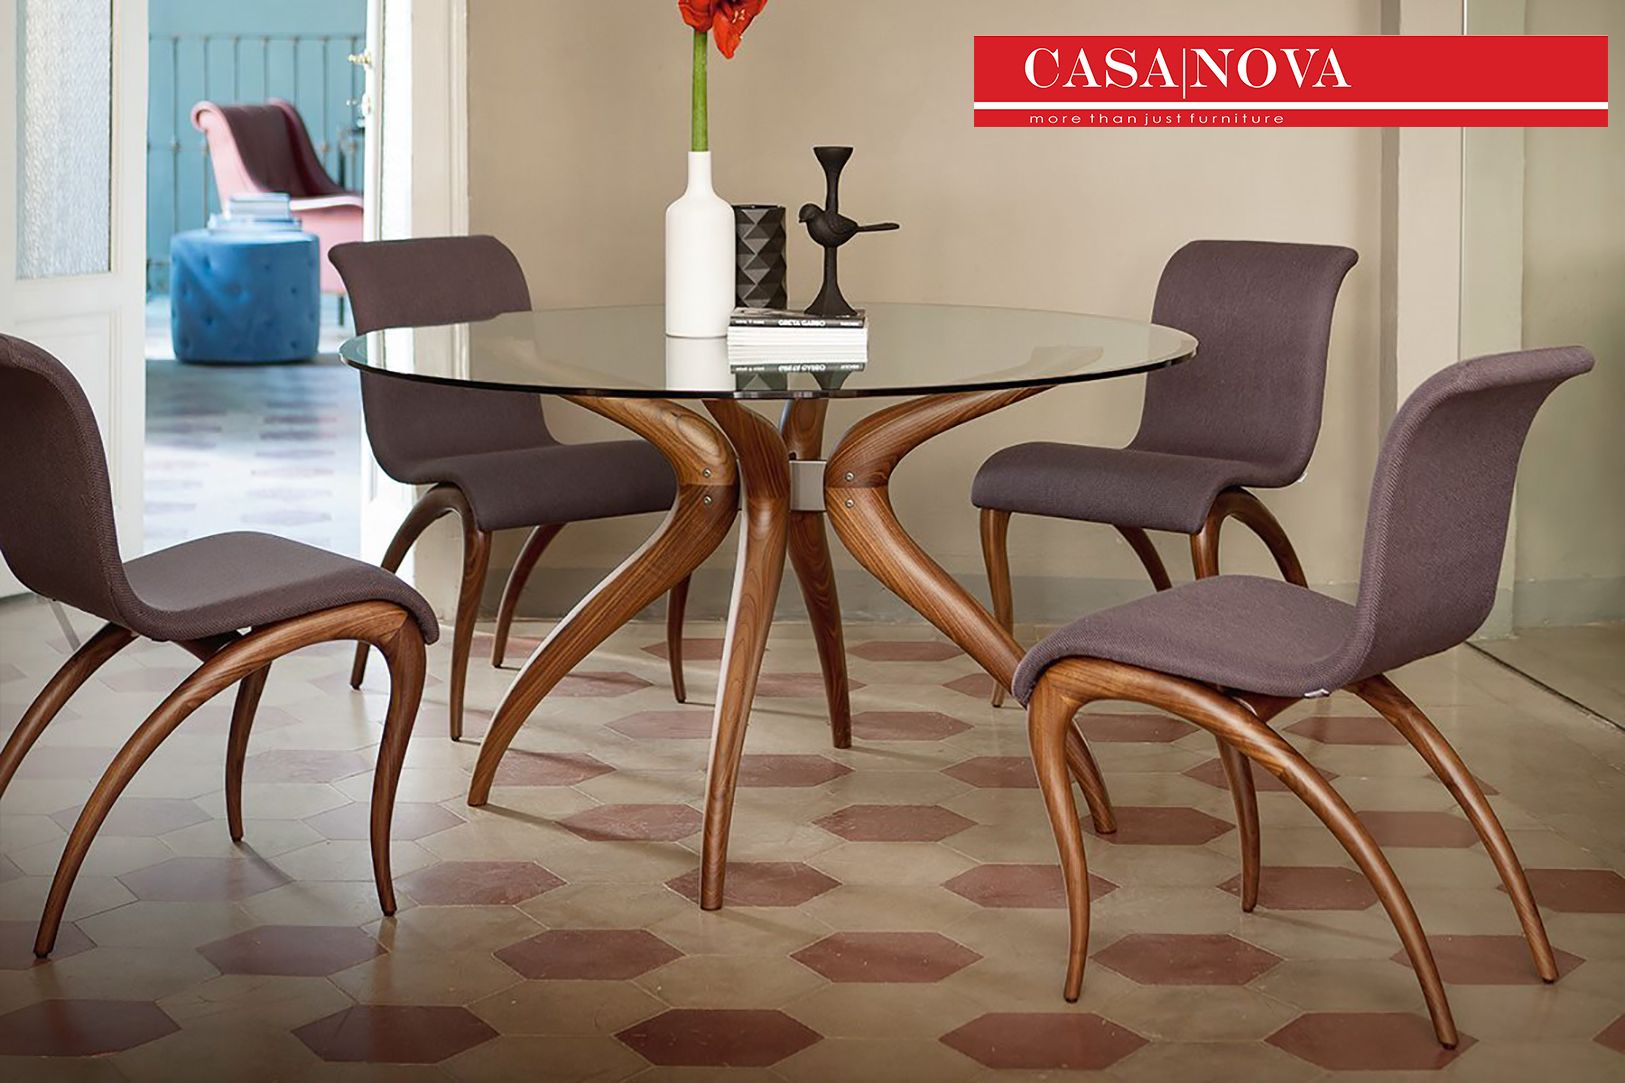 Chair With Frame In Solid Or Canaletta Walnut And Cover In The  # Muebles Kasa Design